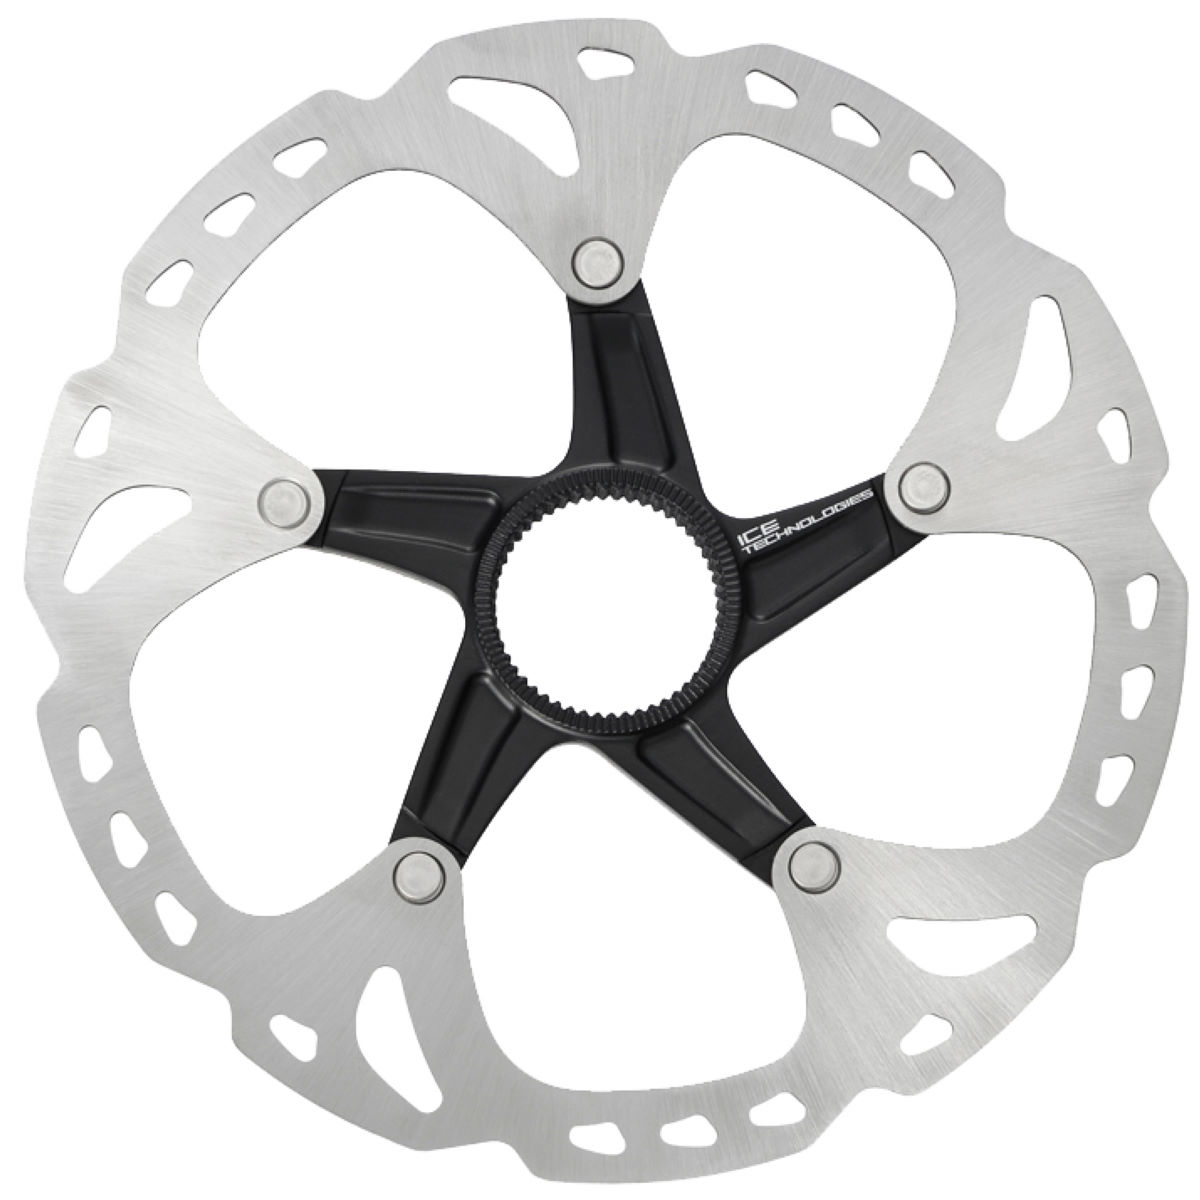 Disque Shimano XT et Saint RT81 Ice-Tec (180 mm, CL) - 180mm Centre-Lock Silver Grey/Black Disques de freins